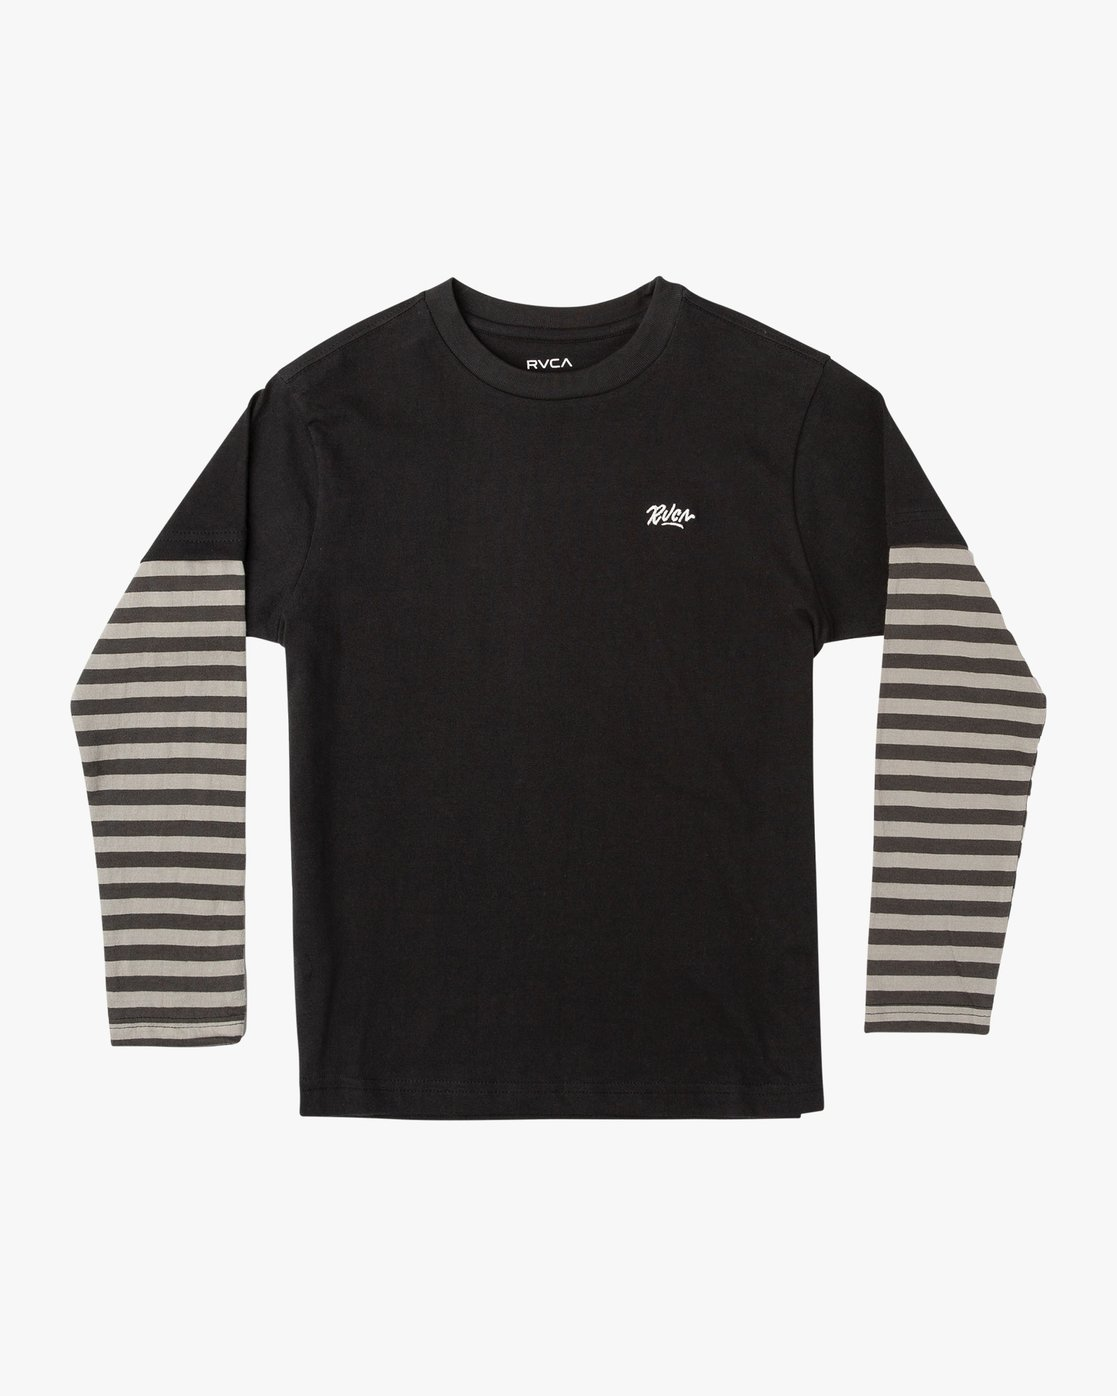 0 Boy's Adored Stripe 2fer Long Sleeve T-Shirt Black B912VRAD RVCA